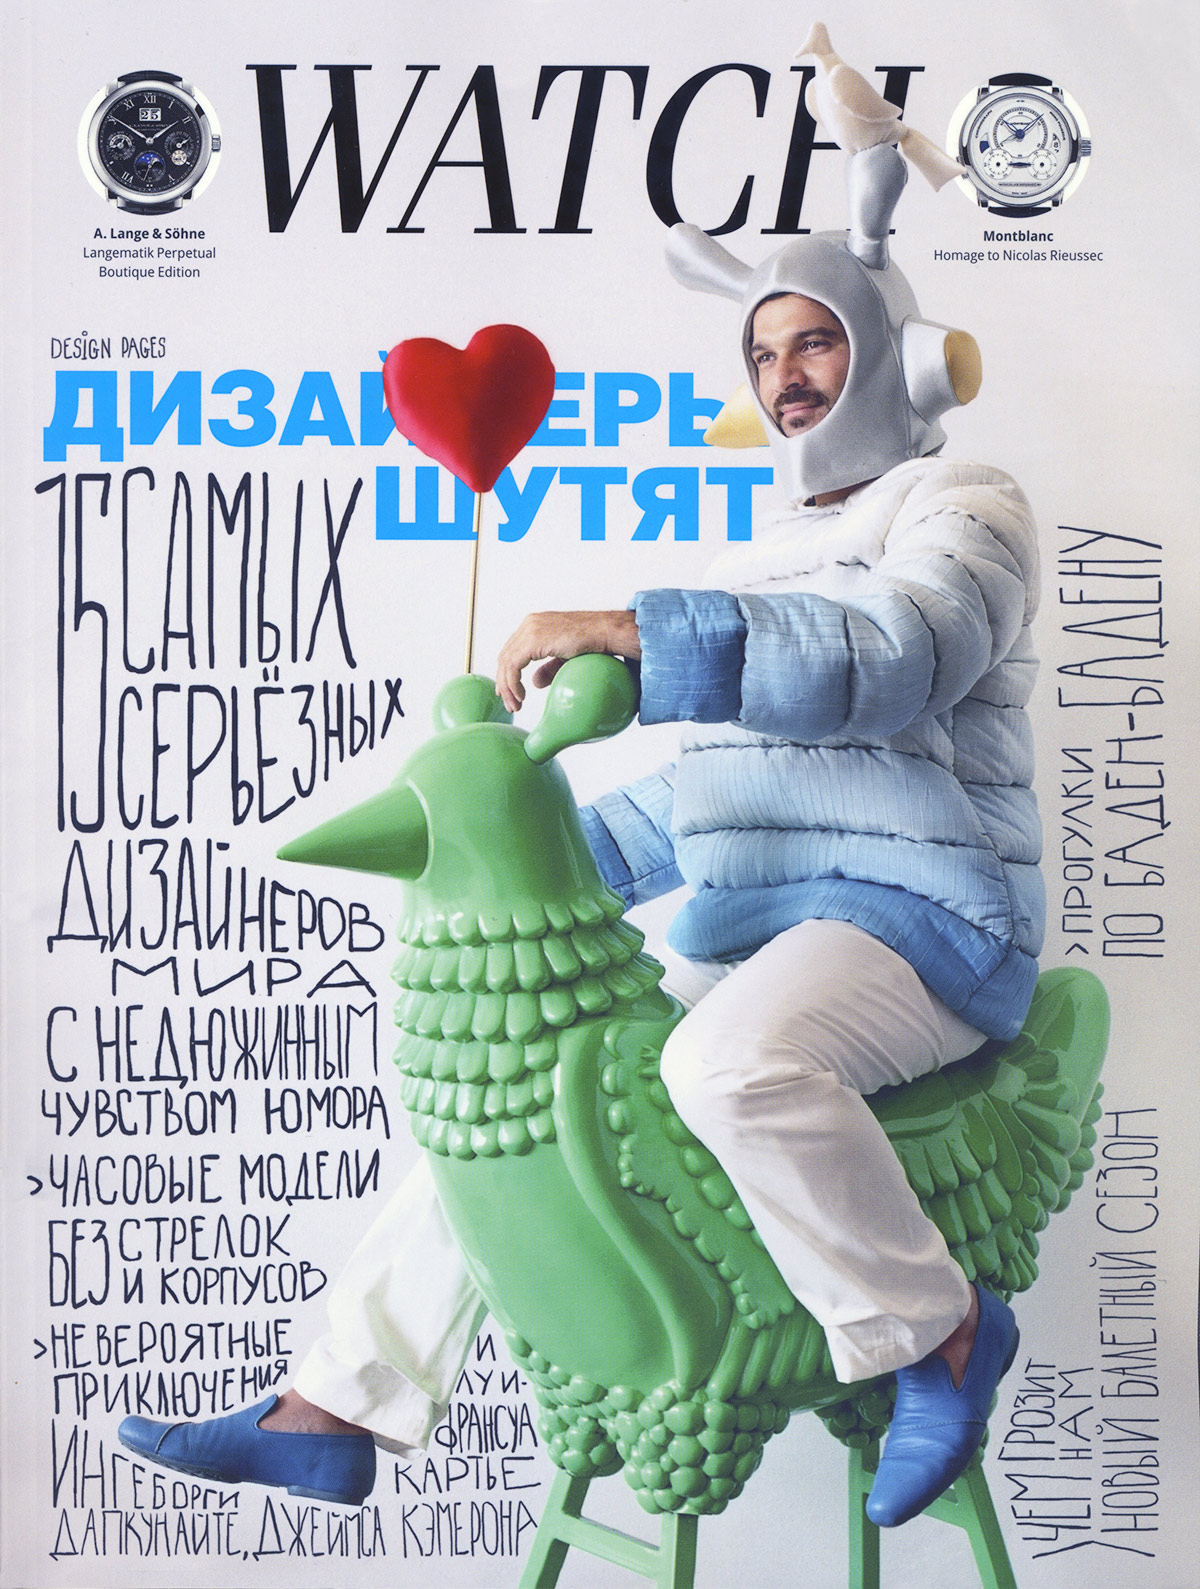 Watch Magazine 2014